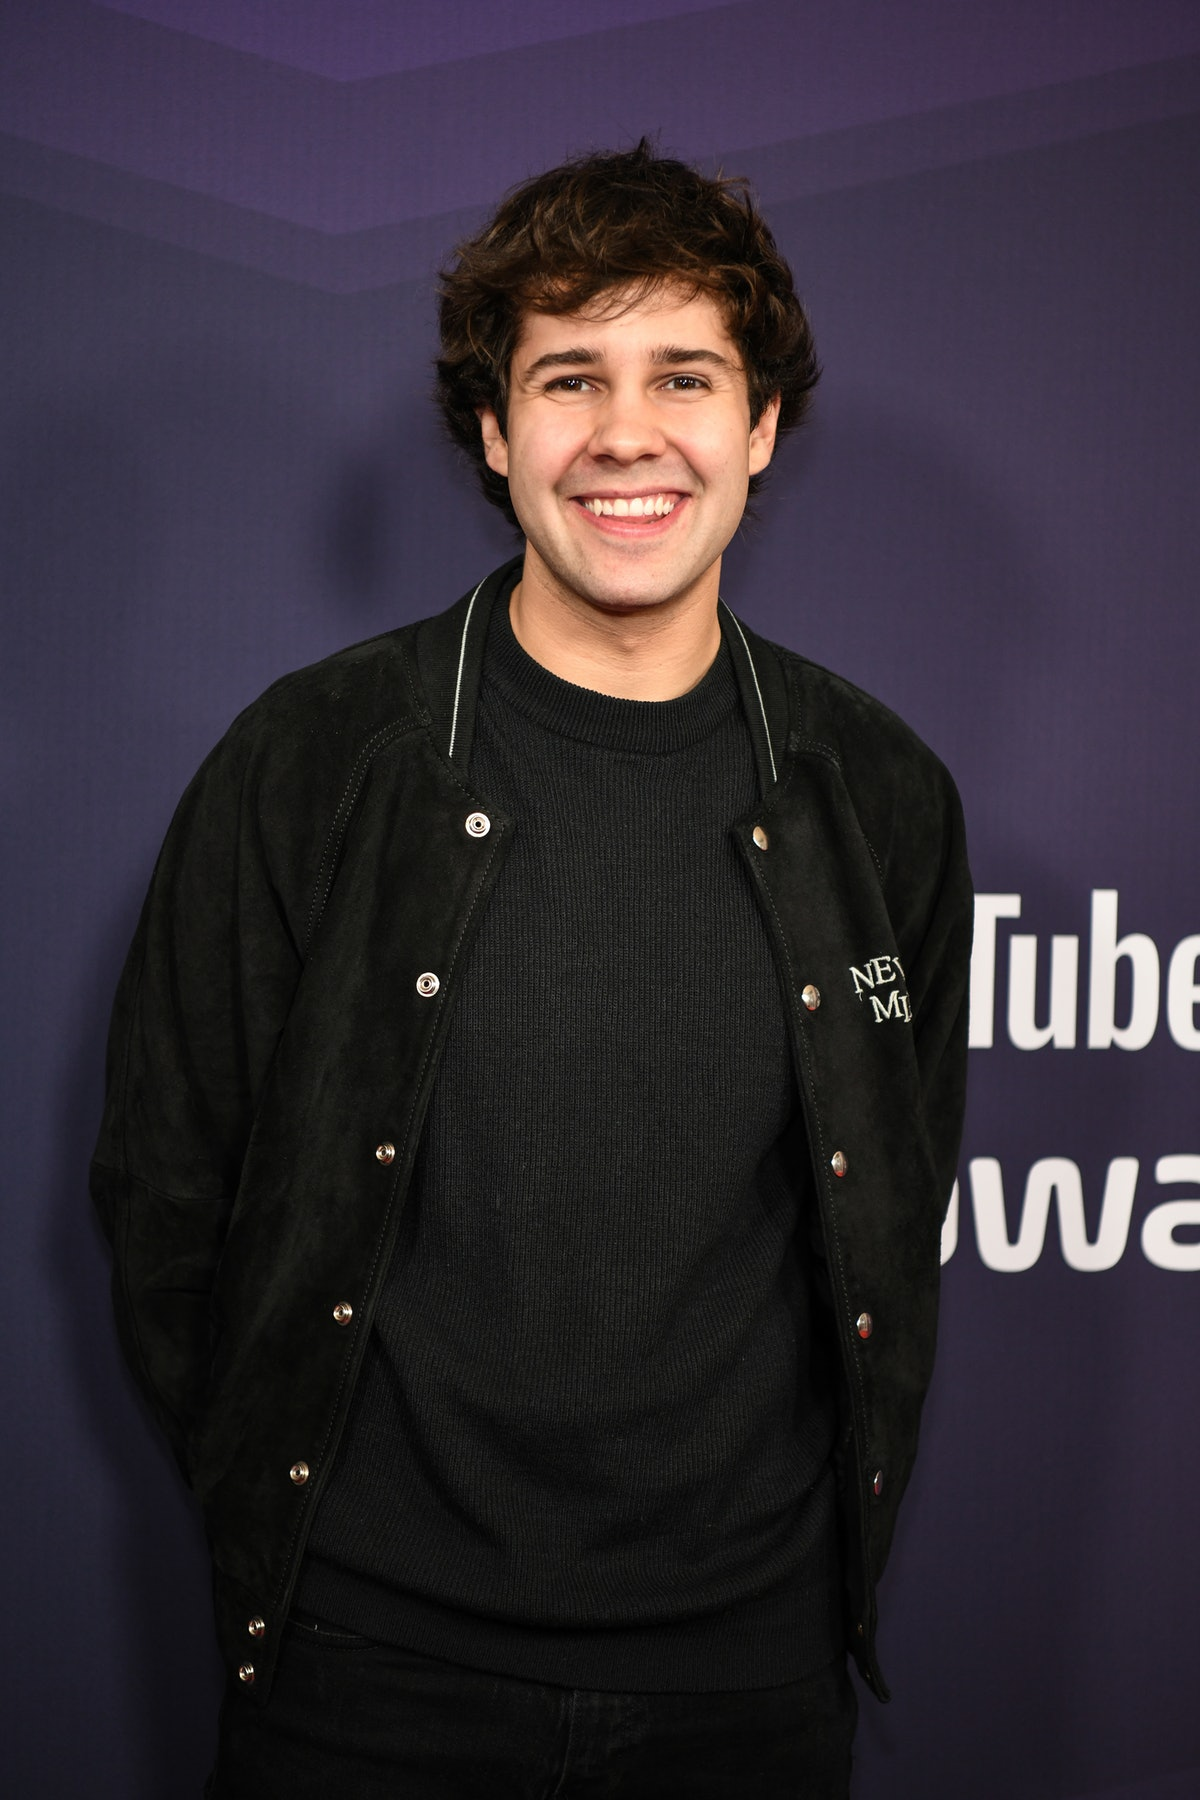 David Dobrik is one of the biggest stars on social media. Unfortunately, some fans think this means they can visit his house whenever they want. David Dobrik's Instagram telling fans not to visit his house is required viewing.